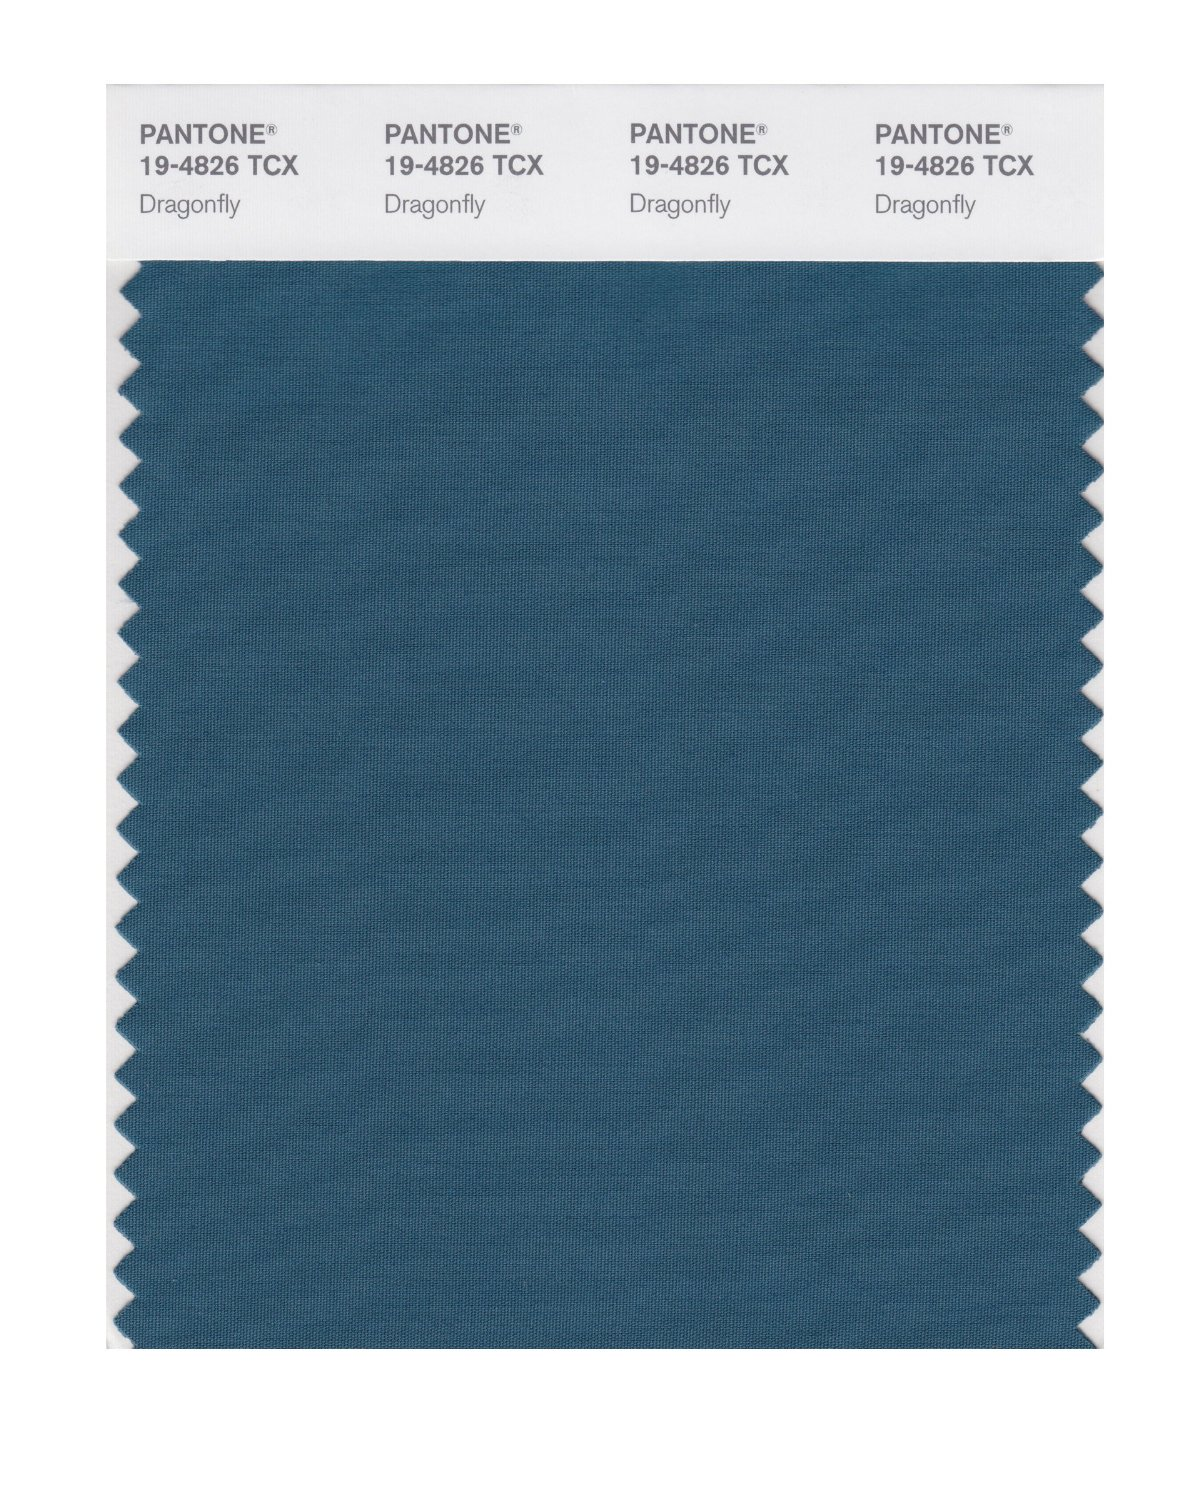 Pantone Smart Swatch 19-4826 Dragonfly